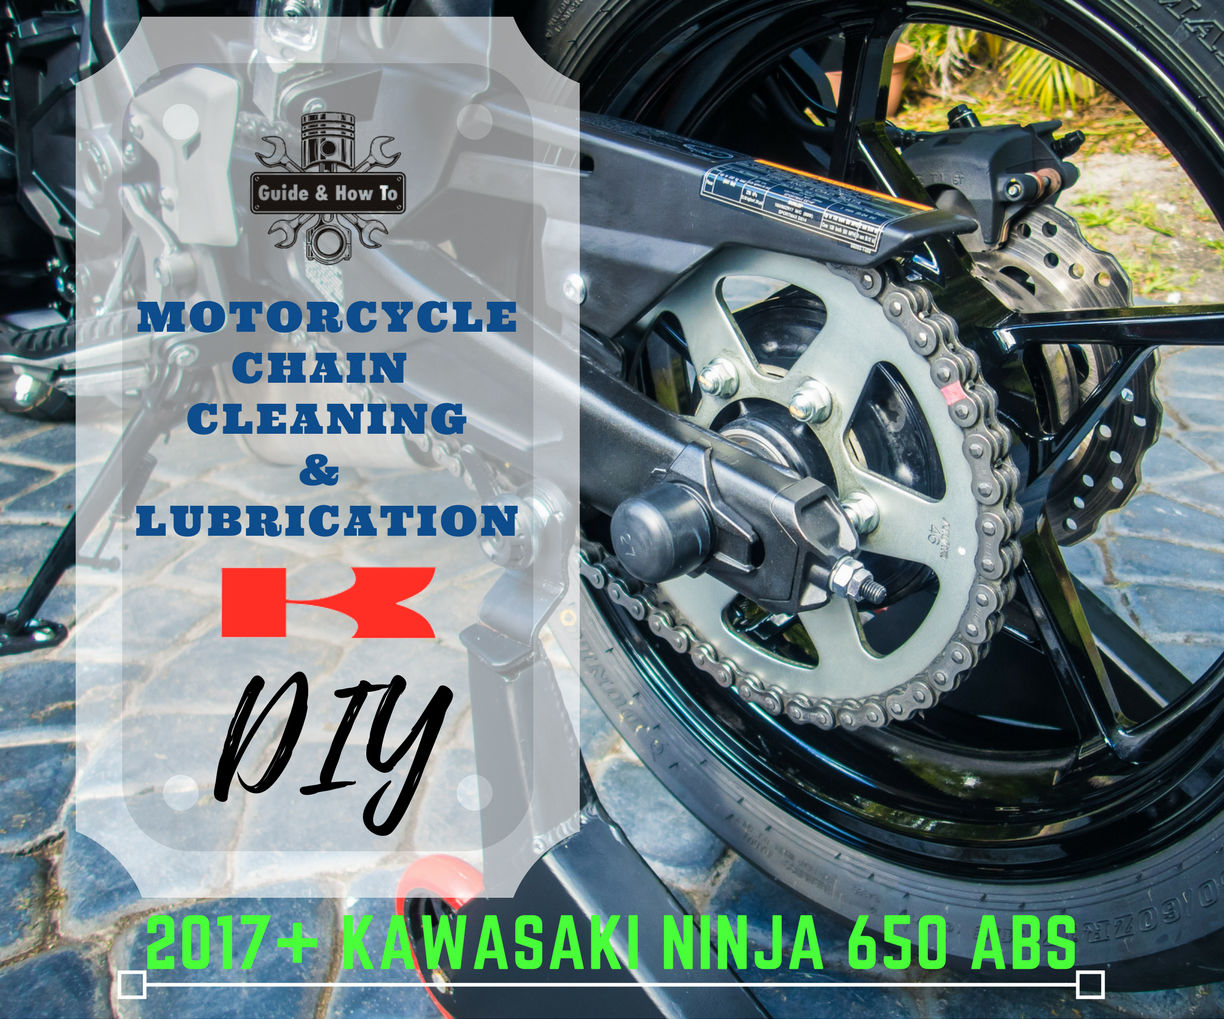 Motorcycle Chain Cleaning & Lubrication - Ninja 650/Z650: 10 Steps